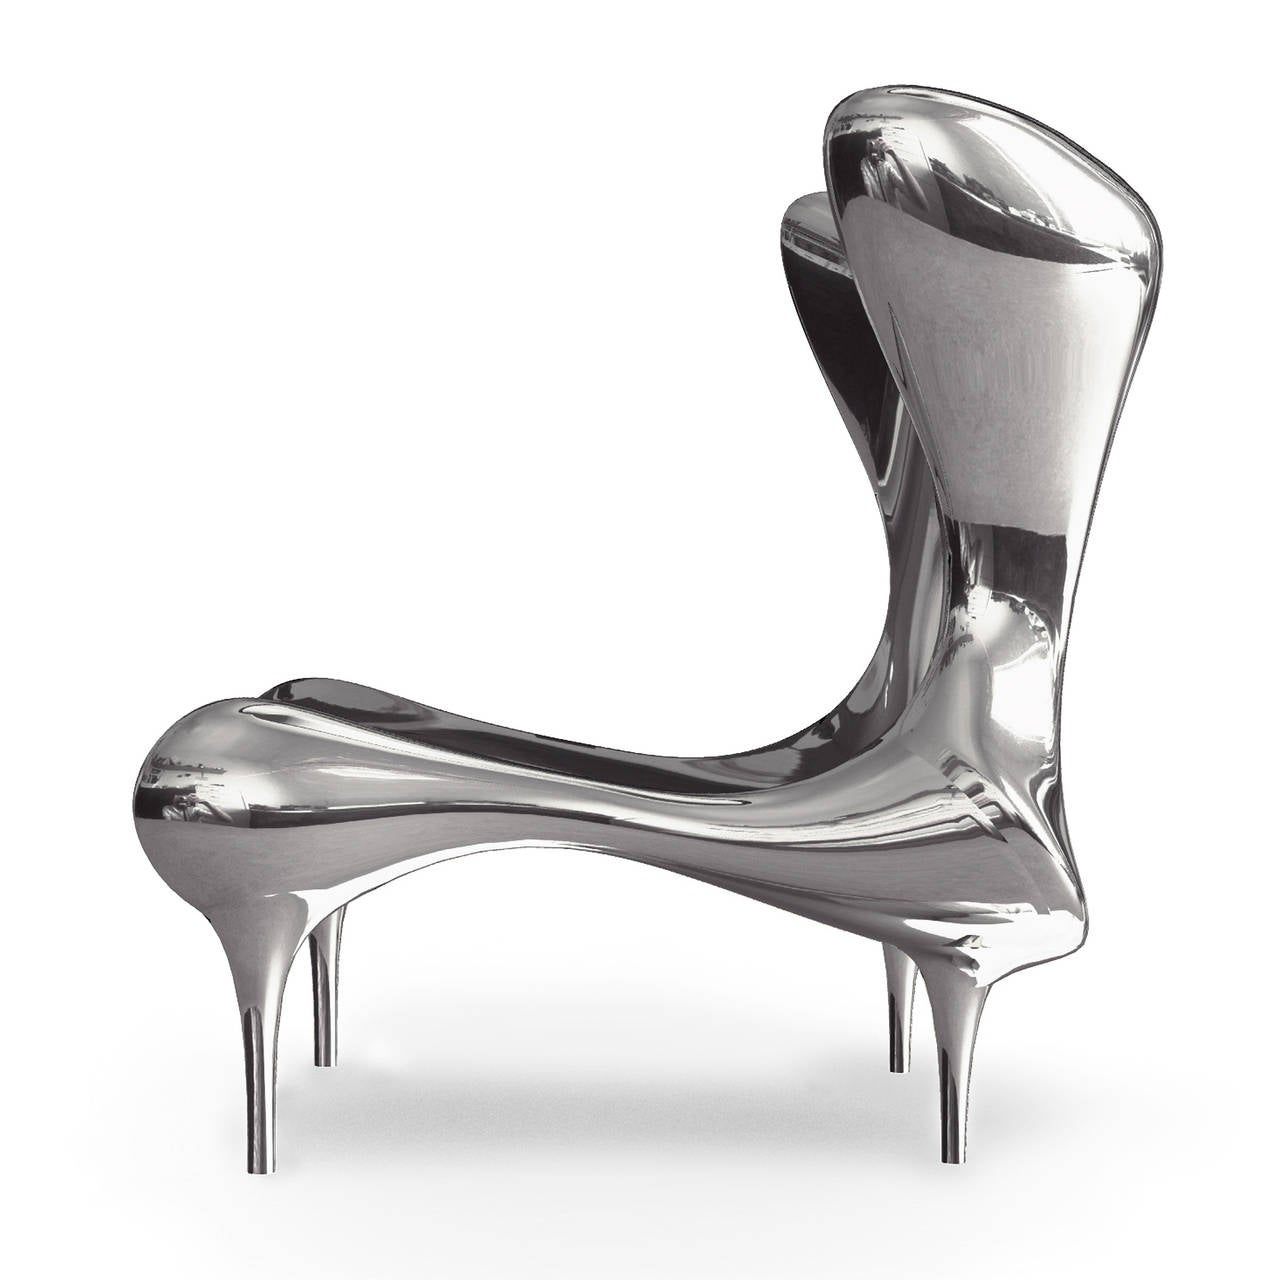 Riemann Chair in Mirror Polished Stainless Steel For Sale